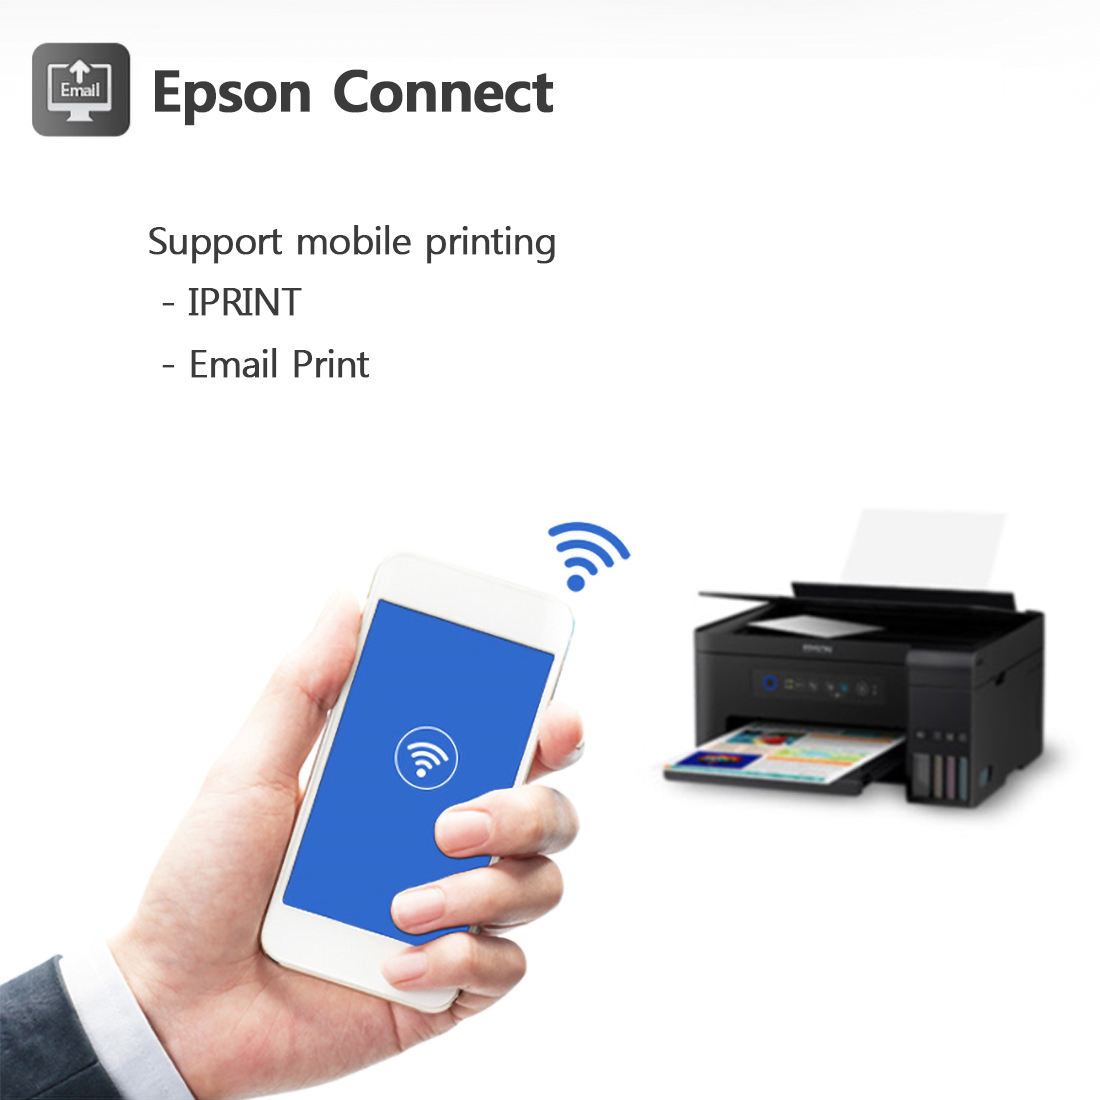 Details about Epson L4150 Wi-Fi All-in-One Ink Tank Printer Scan Copy  Compact